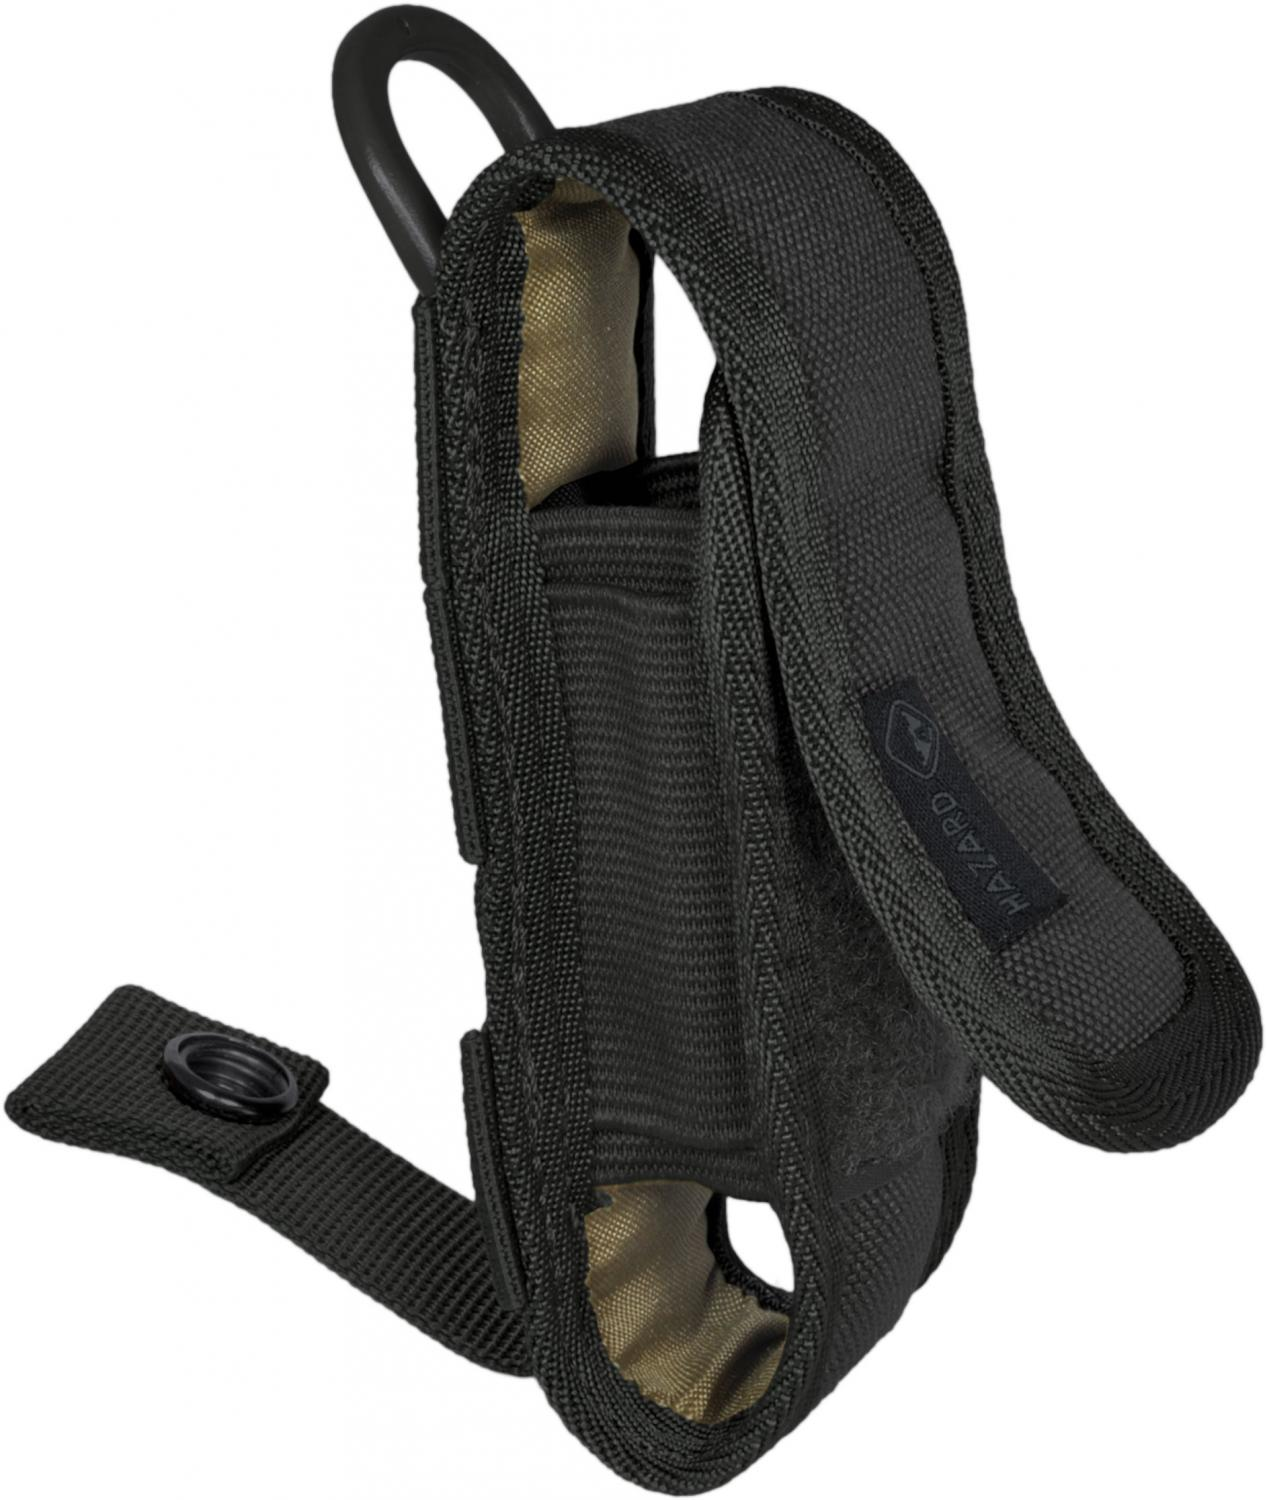 Hazard 4 Mil-Koala Multi-Sheath, Black